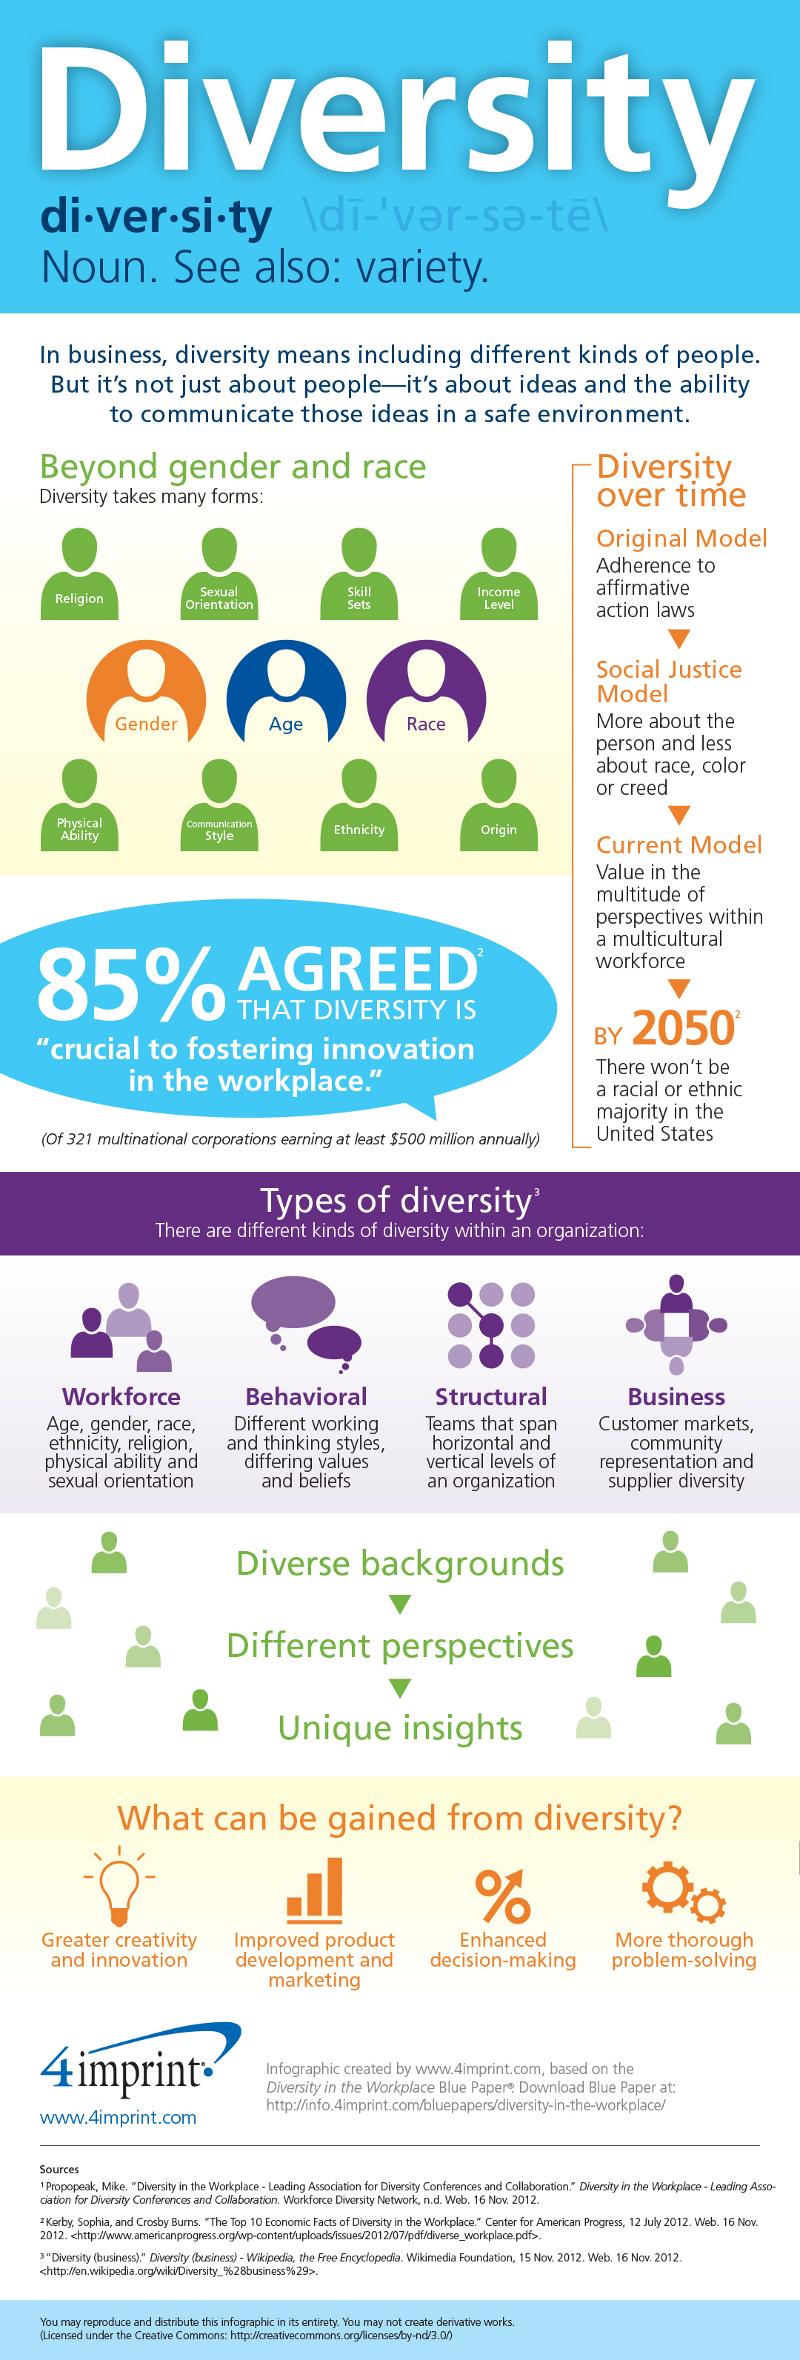 Benefits of Diversity in Business